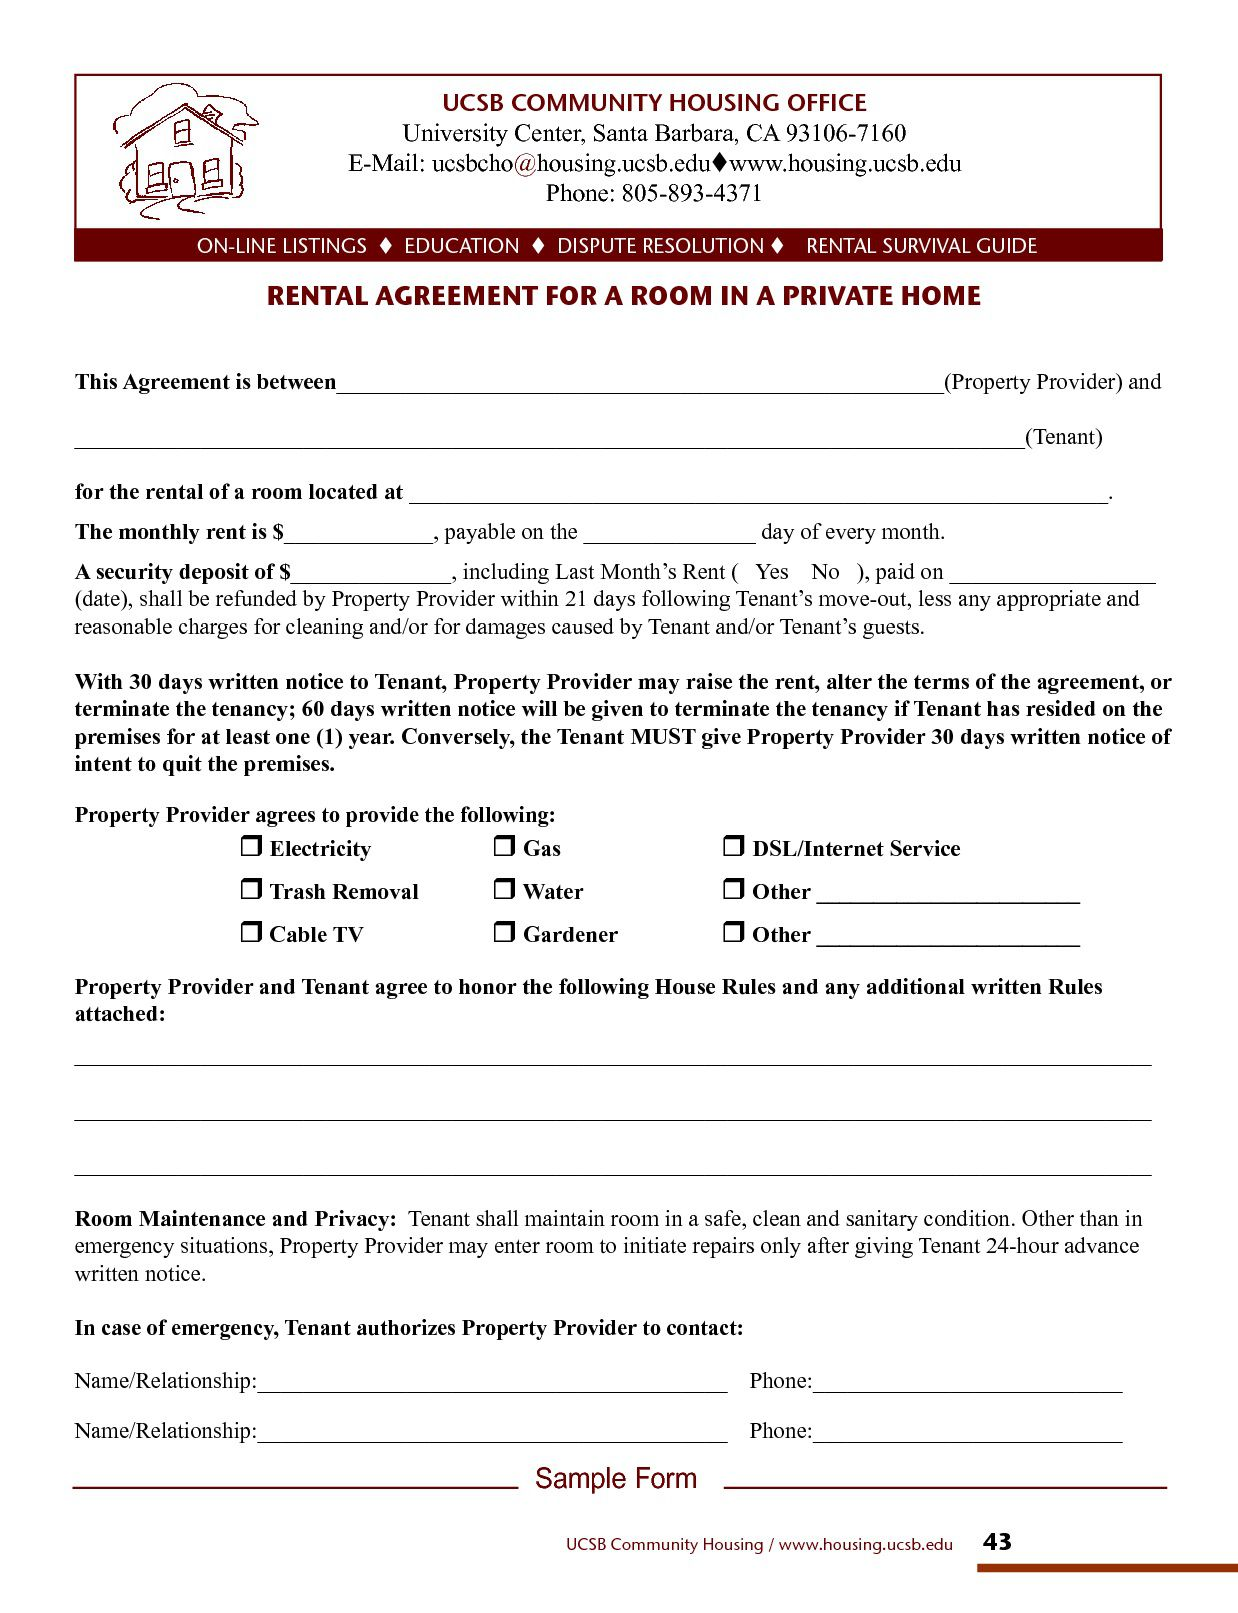 002 Incredible Rental Lease Agreement Template Sample  Templates South Africa California Form PdfFull